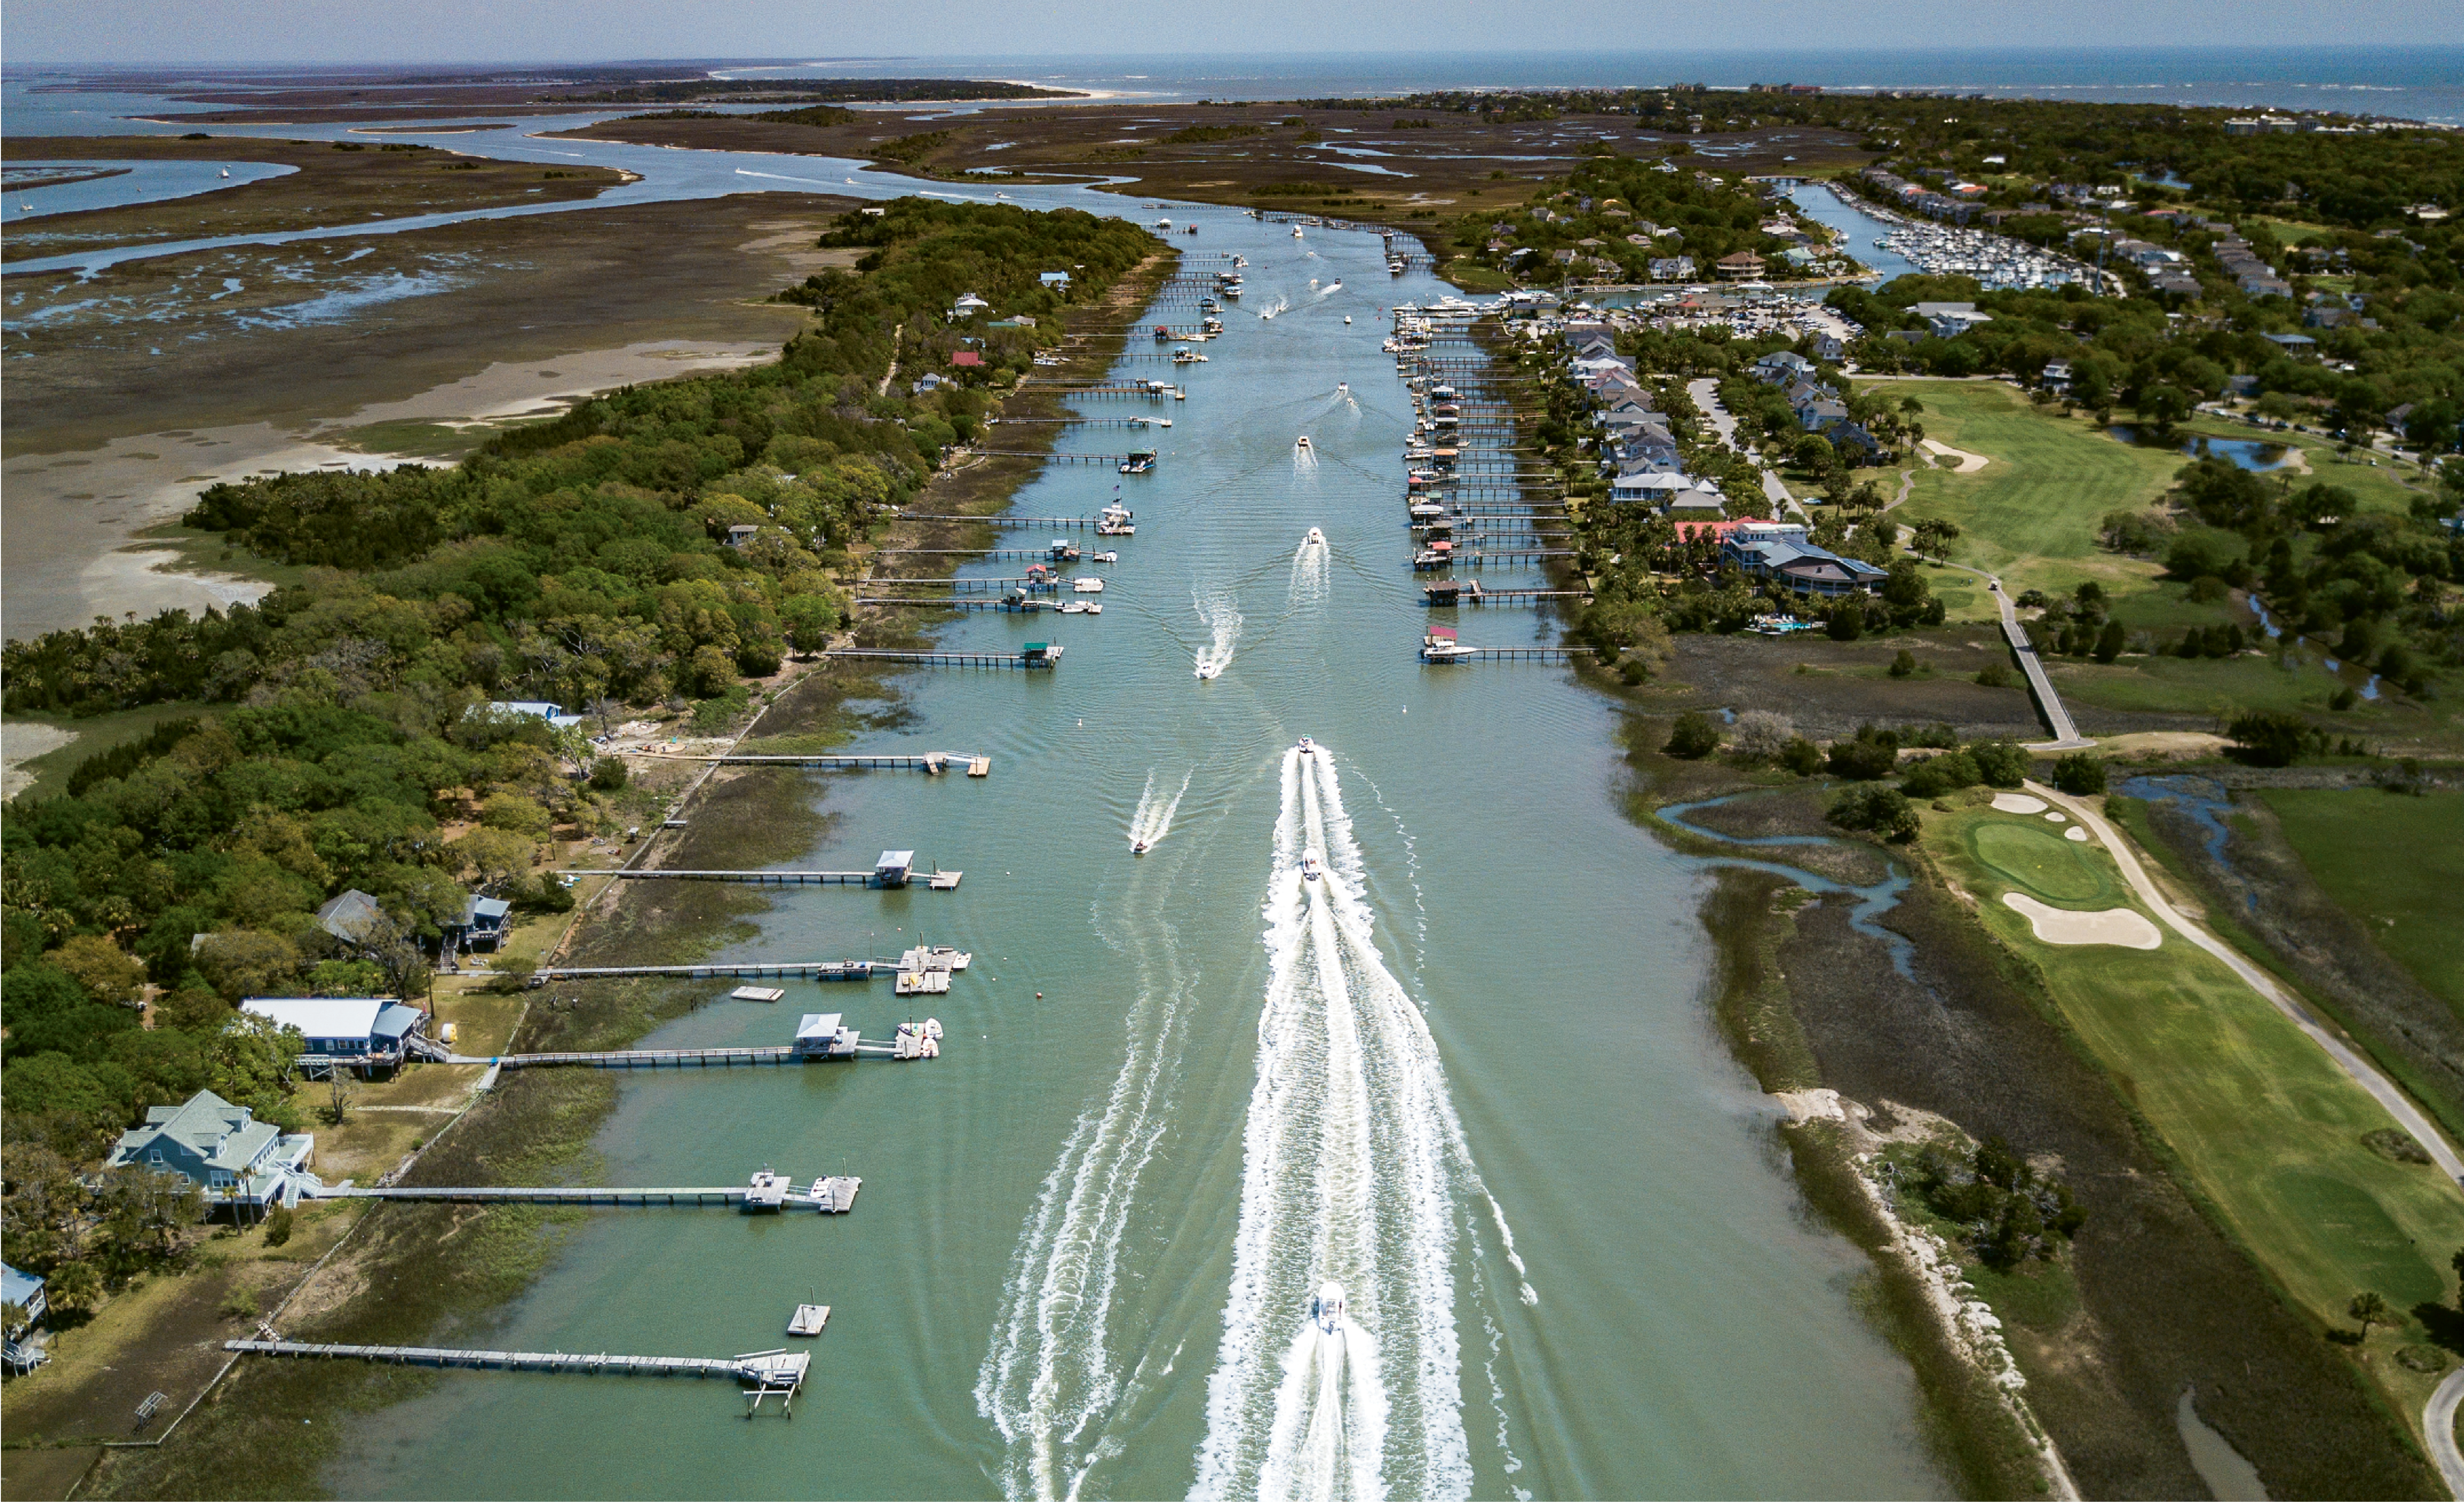 """Easter Weekend Traffic""  {Altitude: 250 feet}  A parade of boats motoring down the Intracoastal Waterway near Isle of Palms"